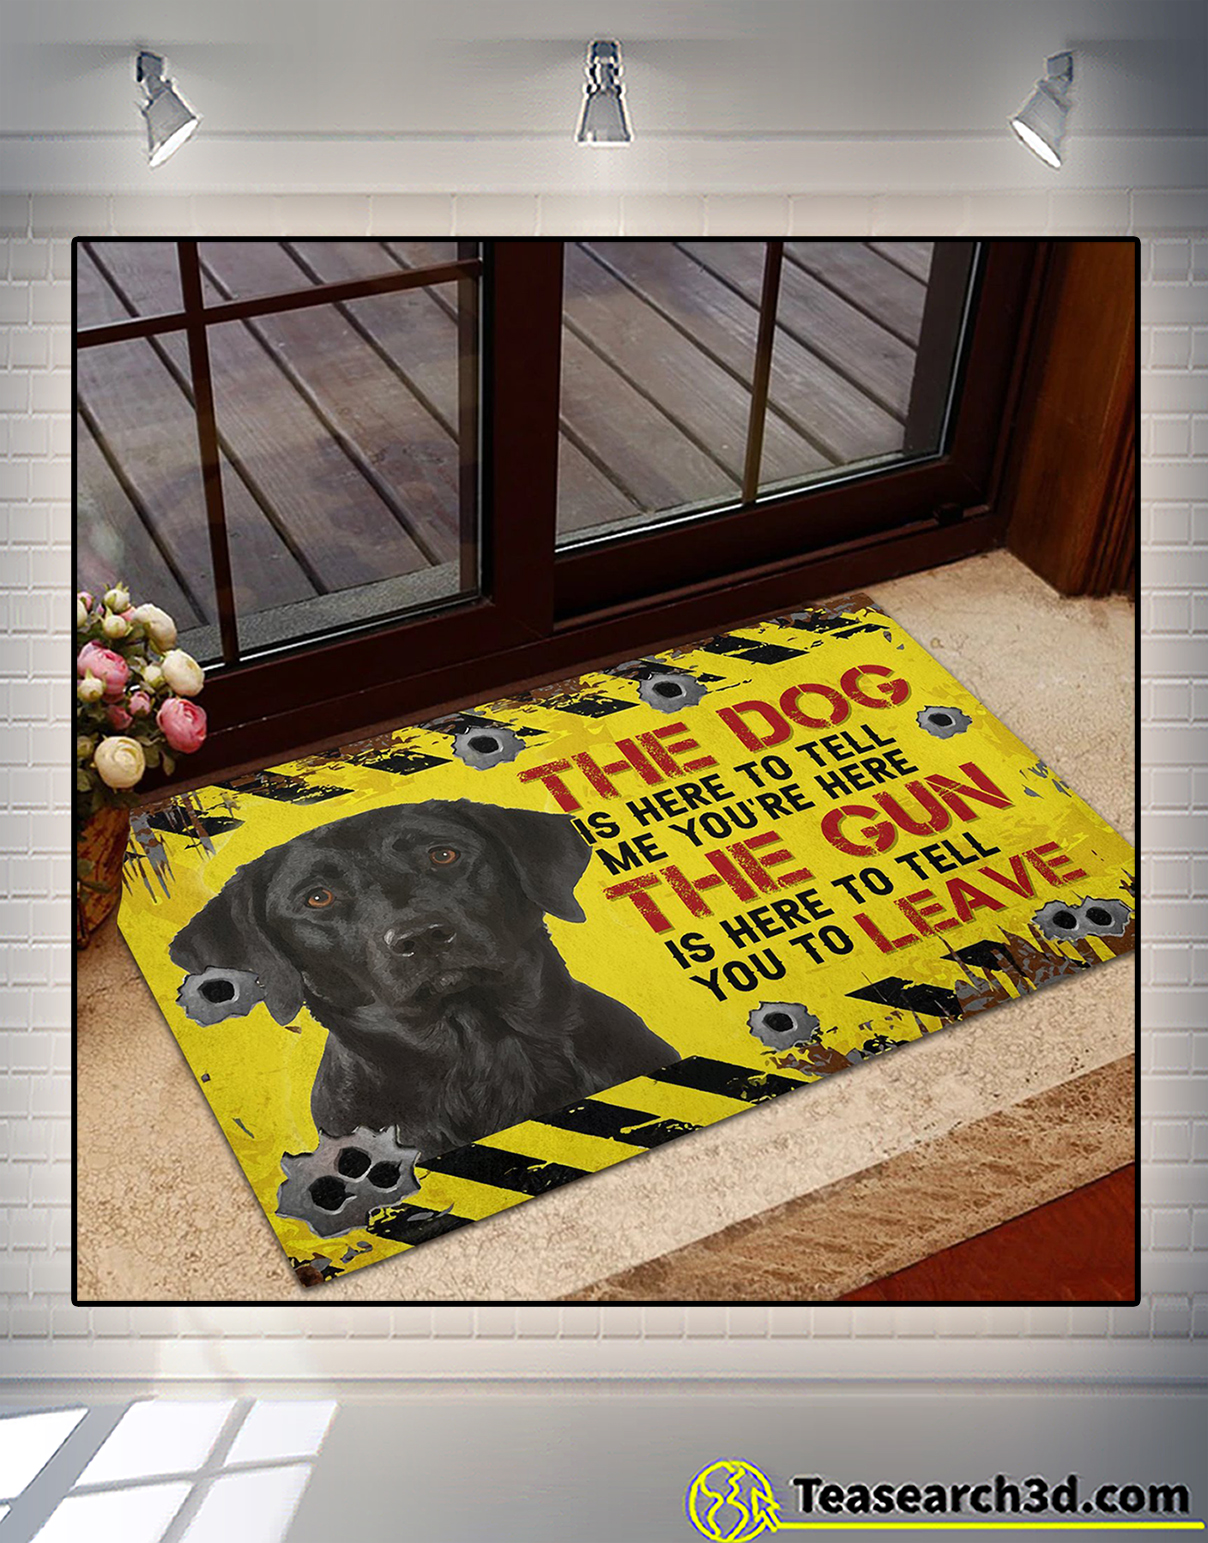 Labrador Retriever The dog is here to tell me you're here doormat